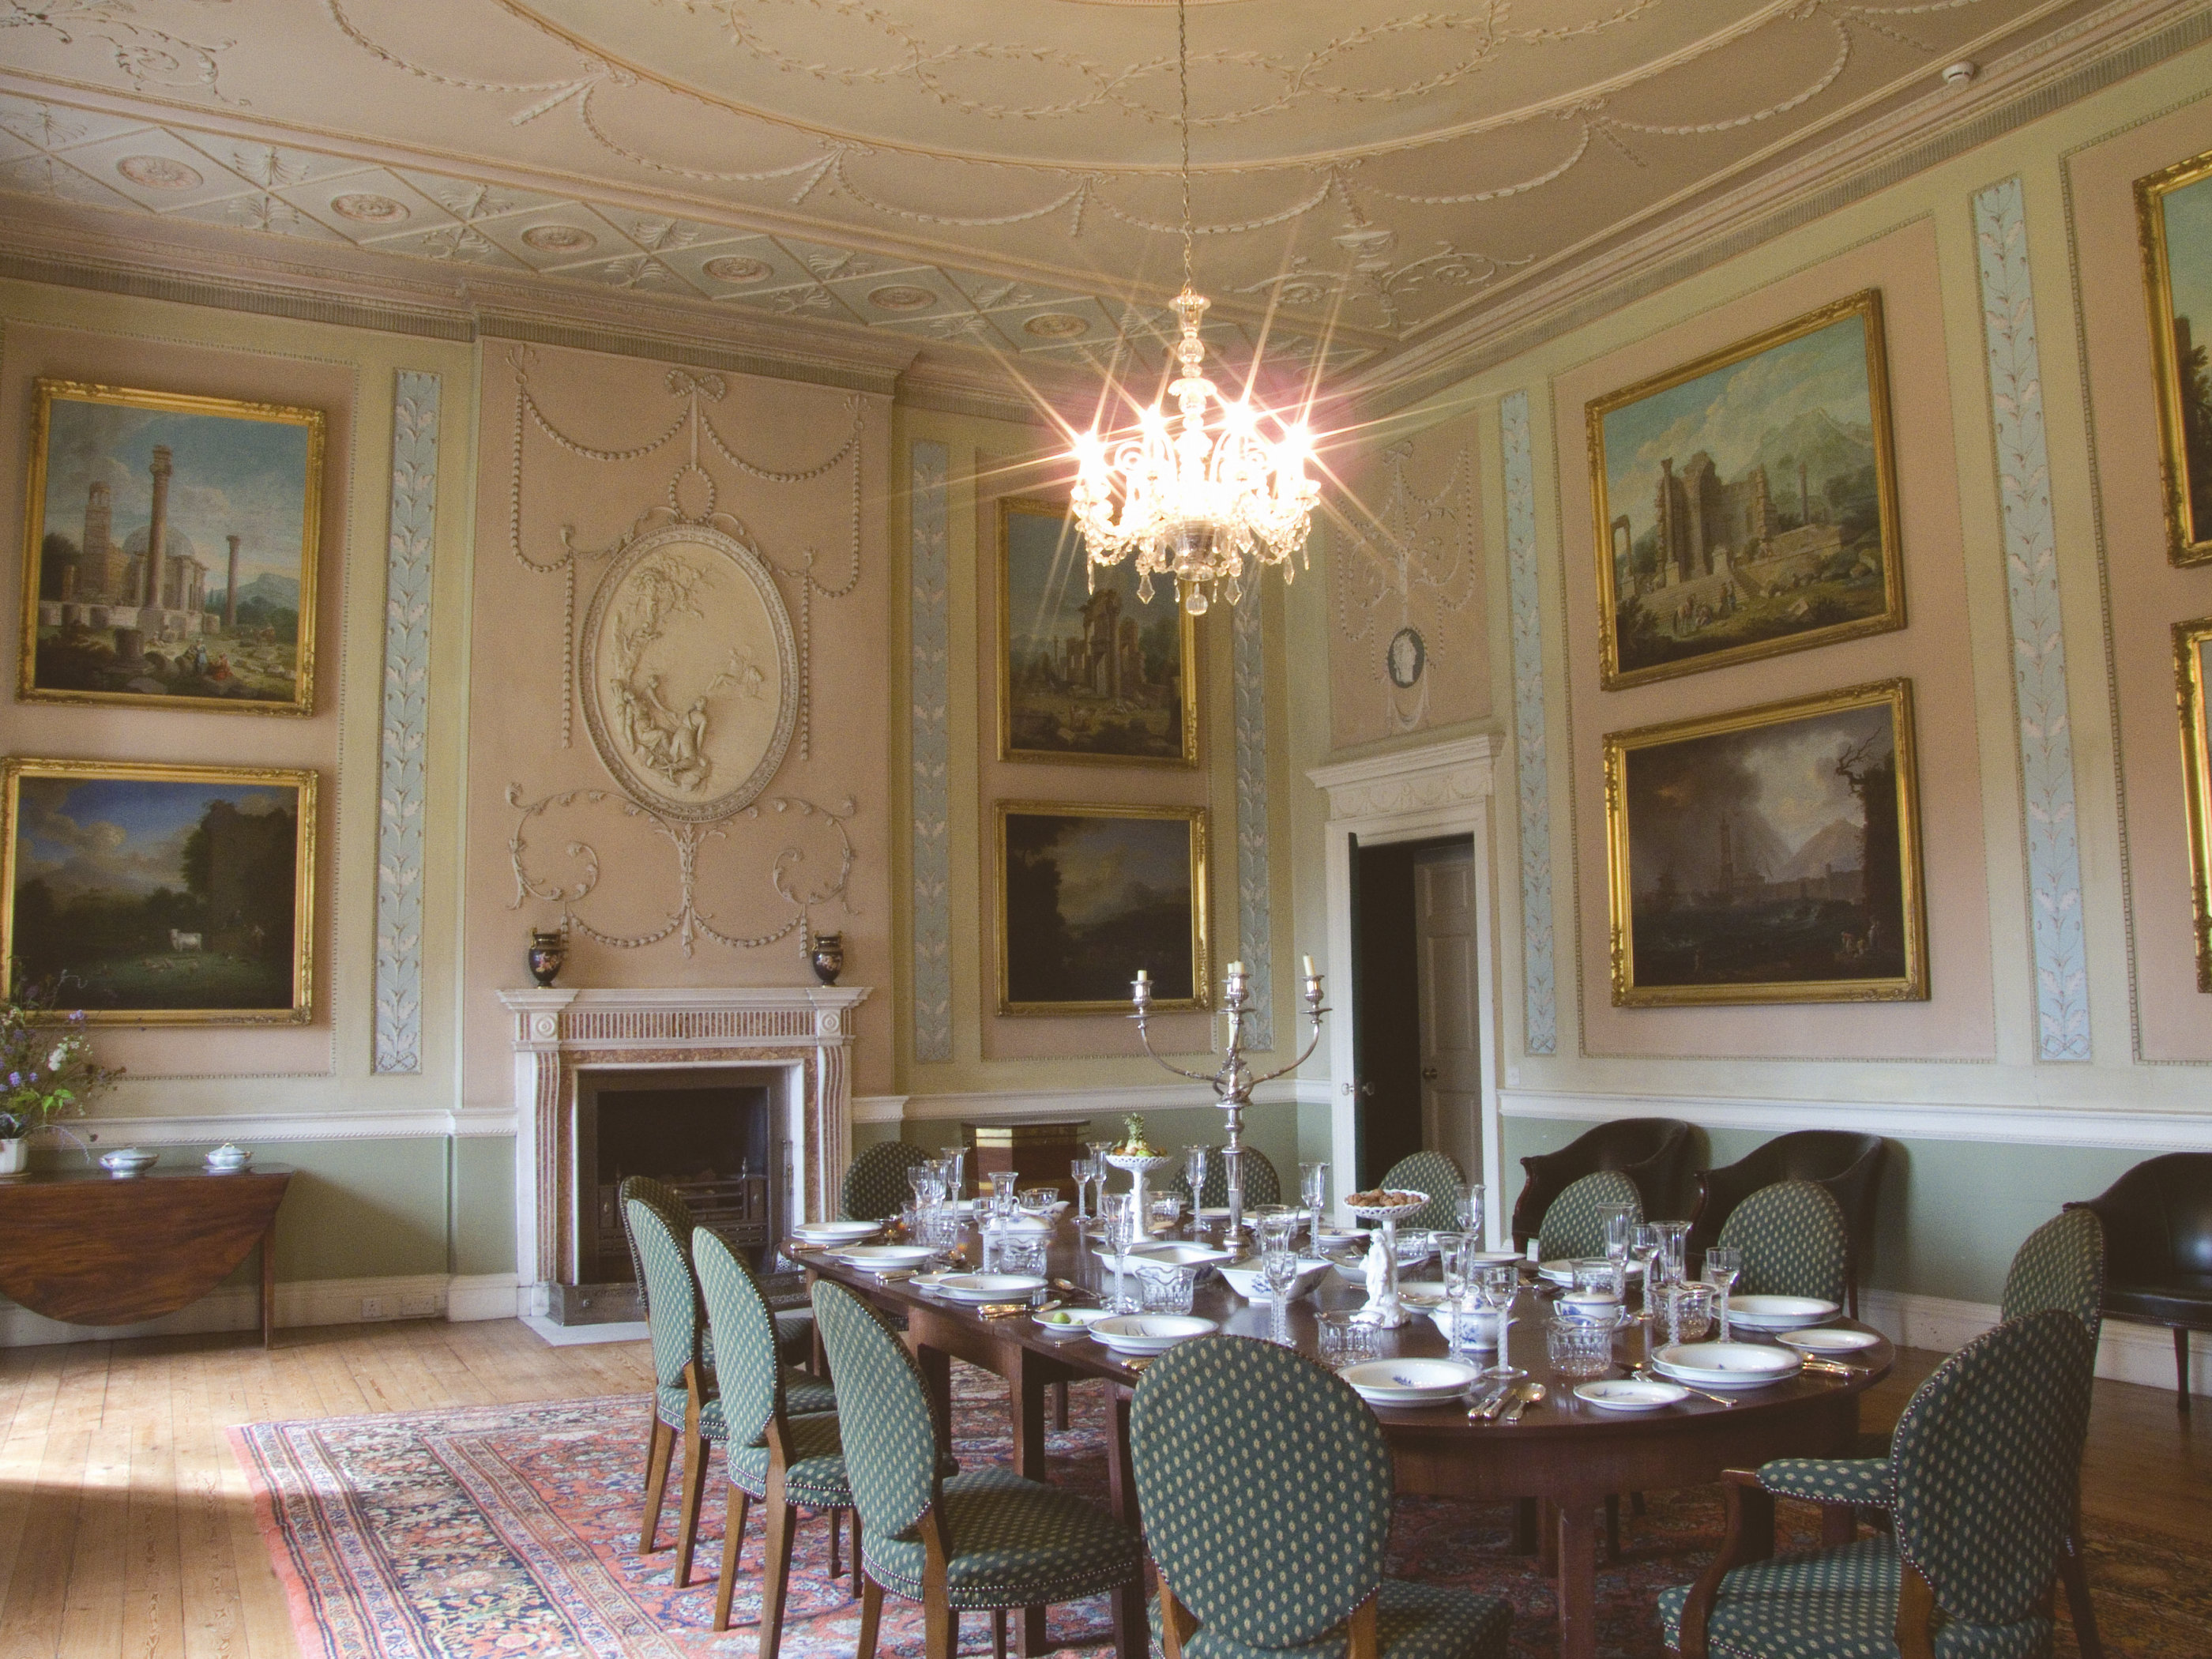 Dining Room of Paxton House